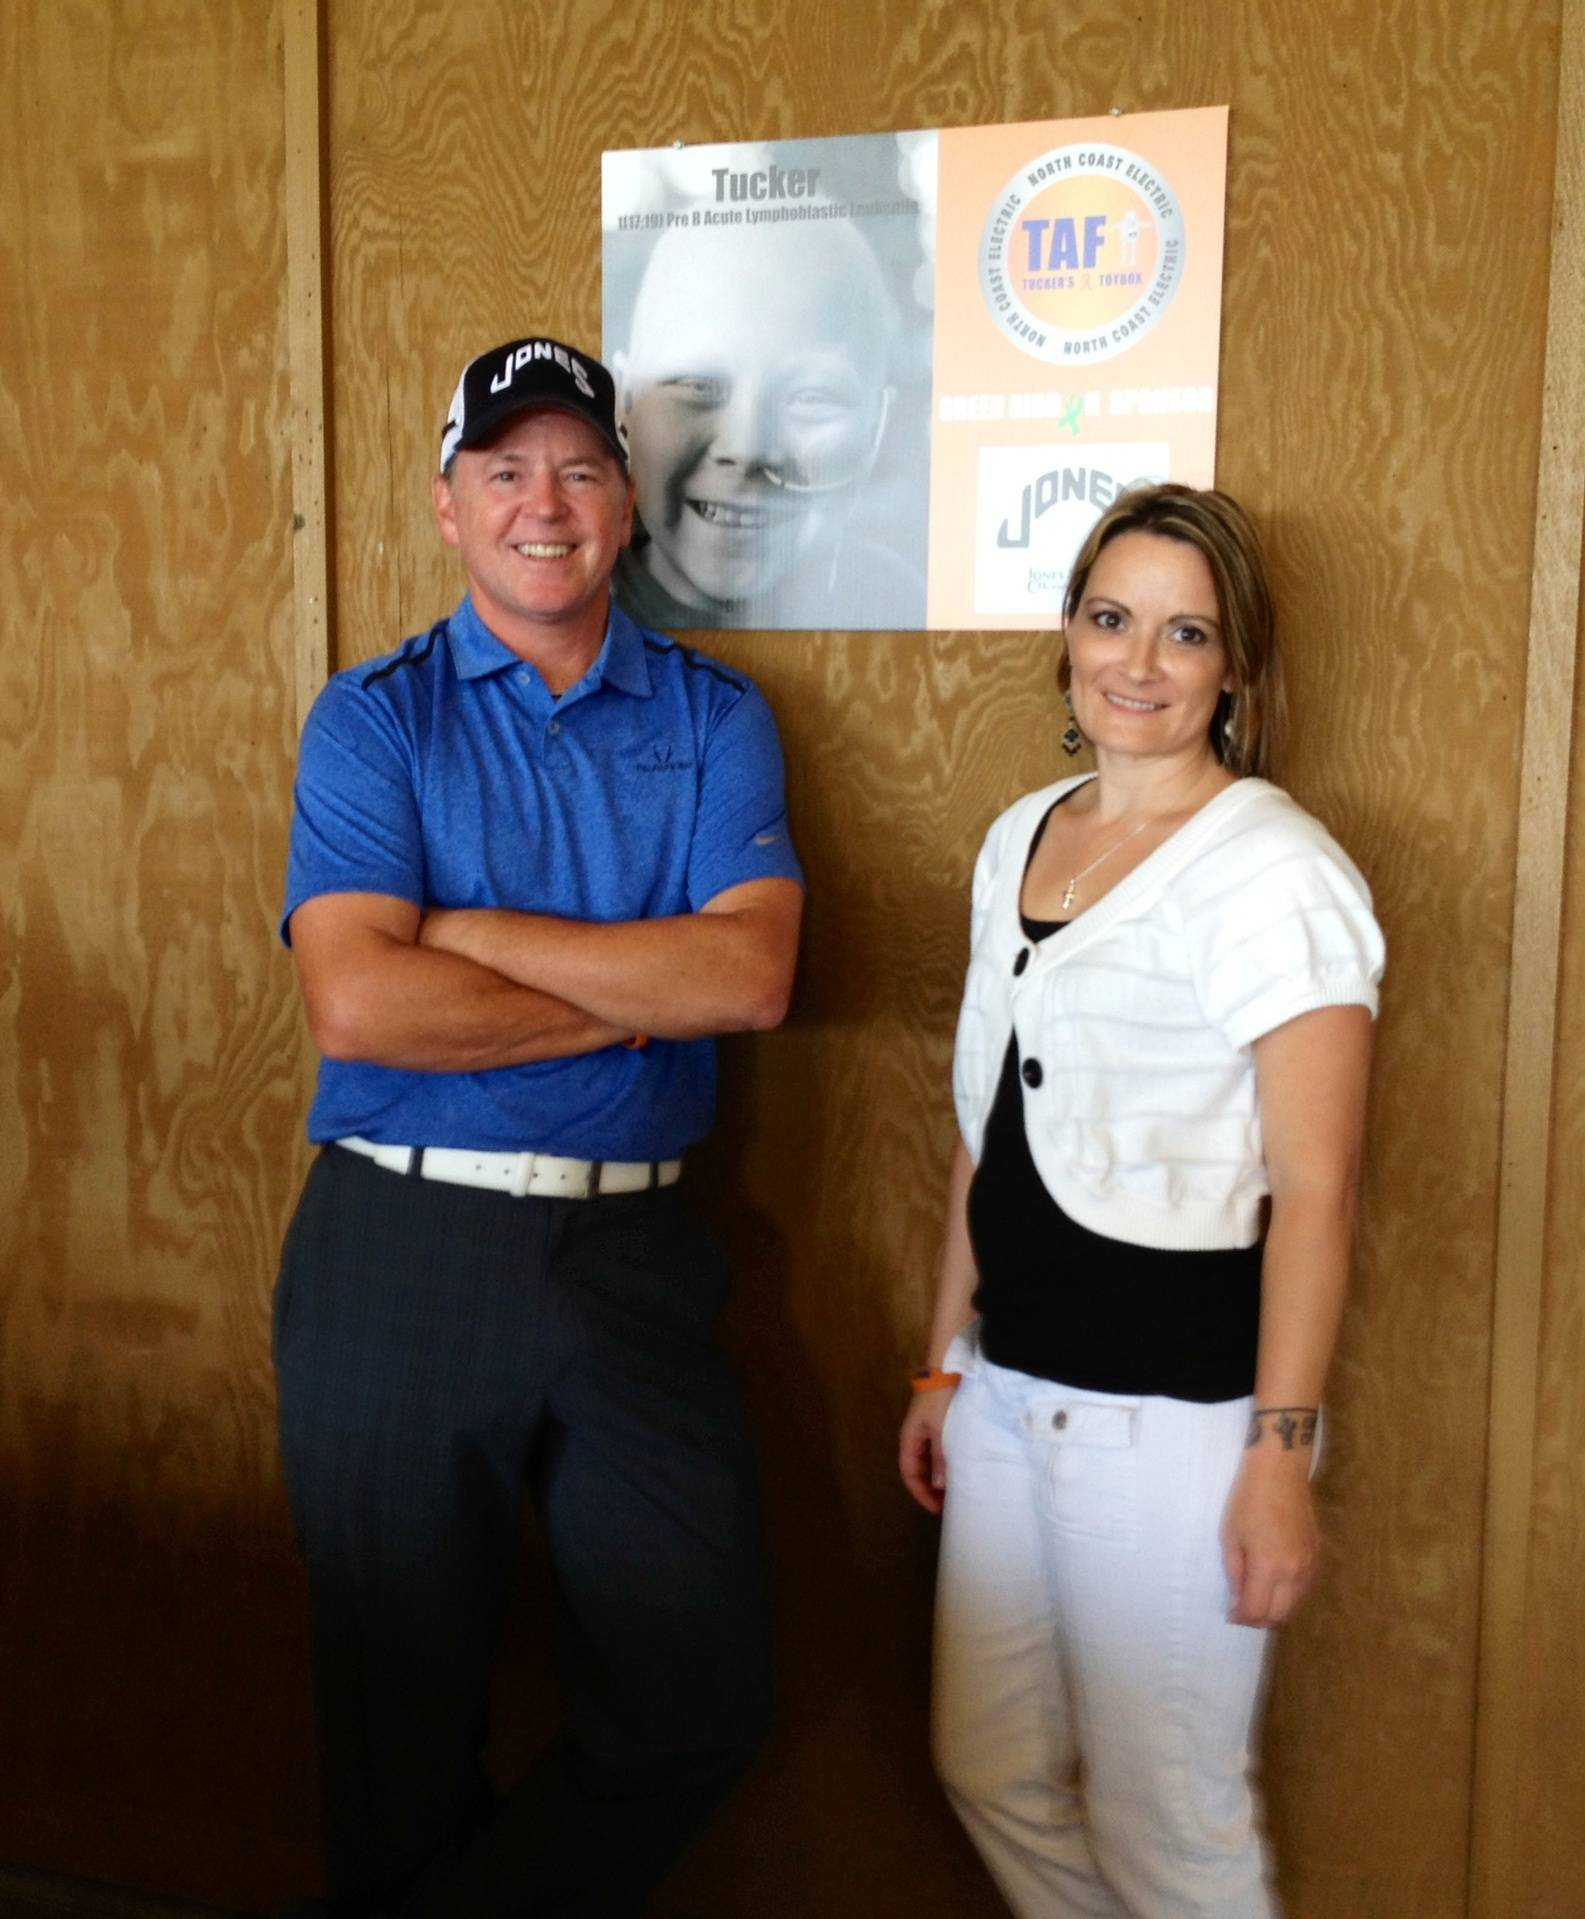 Dean Lemman, Jones Sports Co & Jen Arnold, TAF